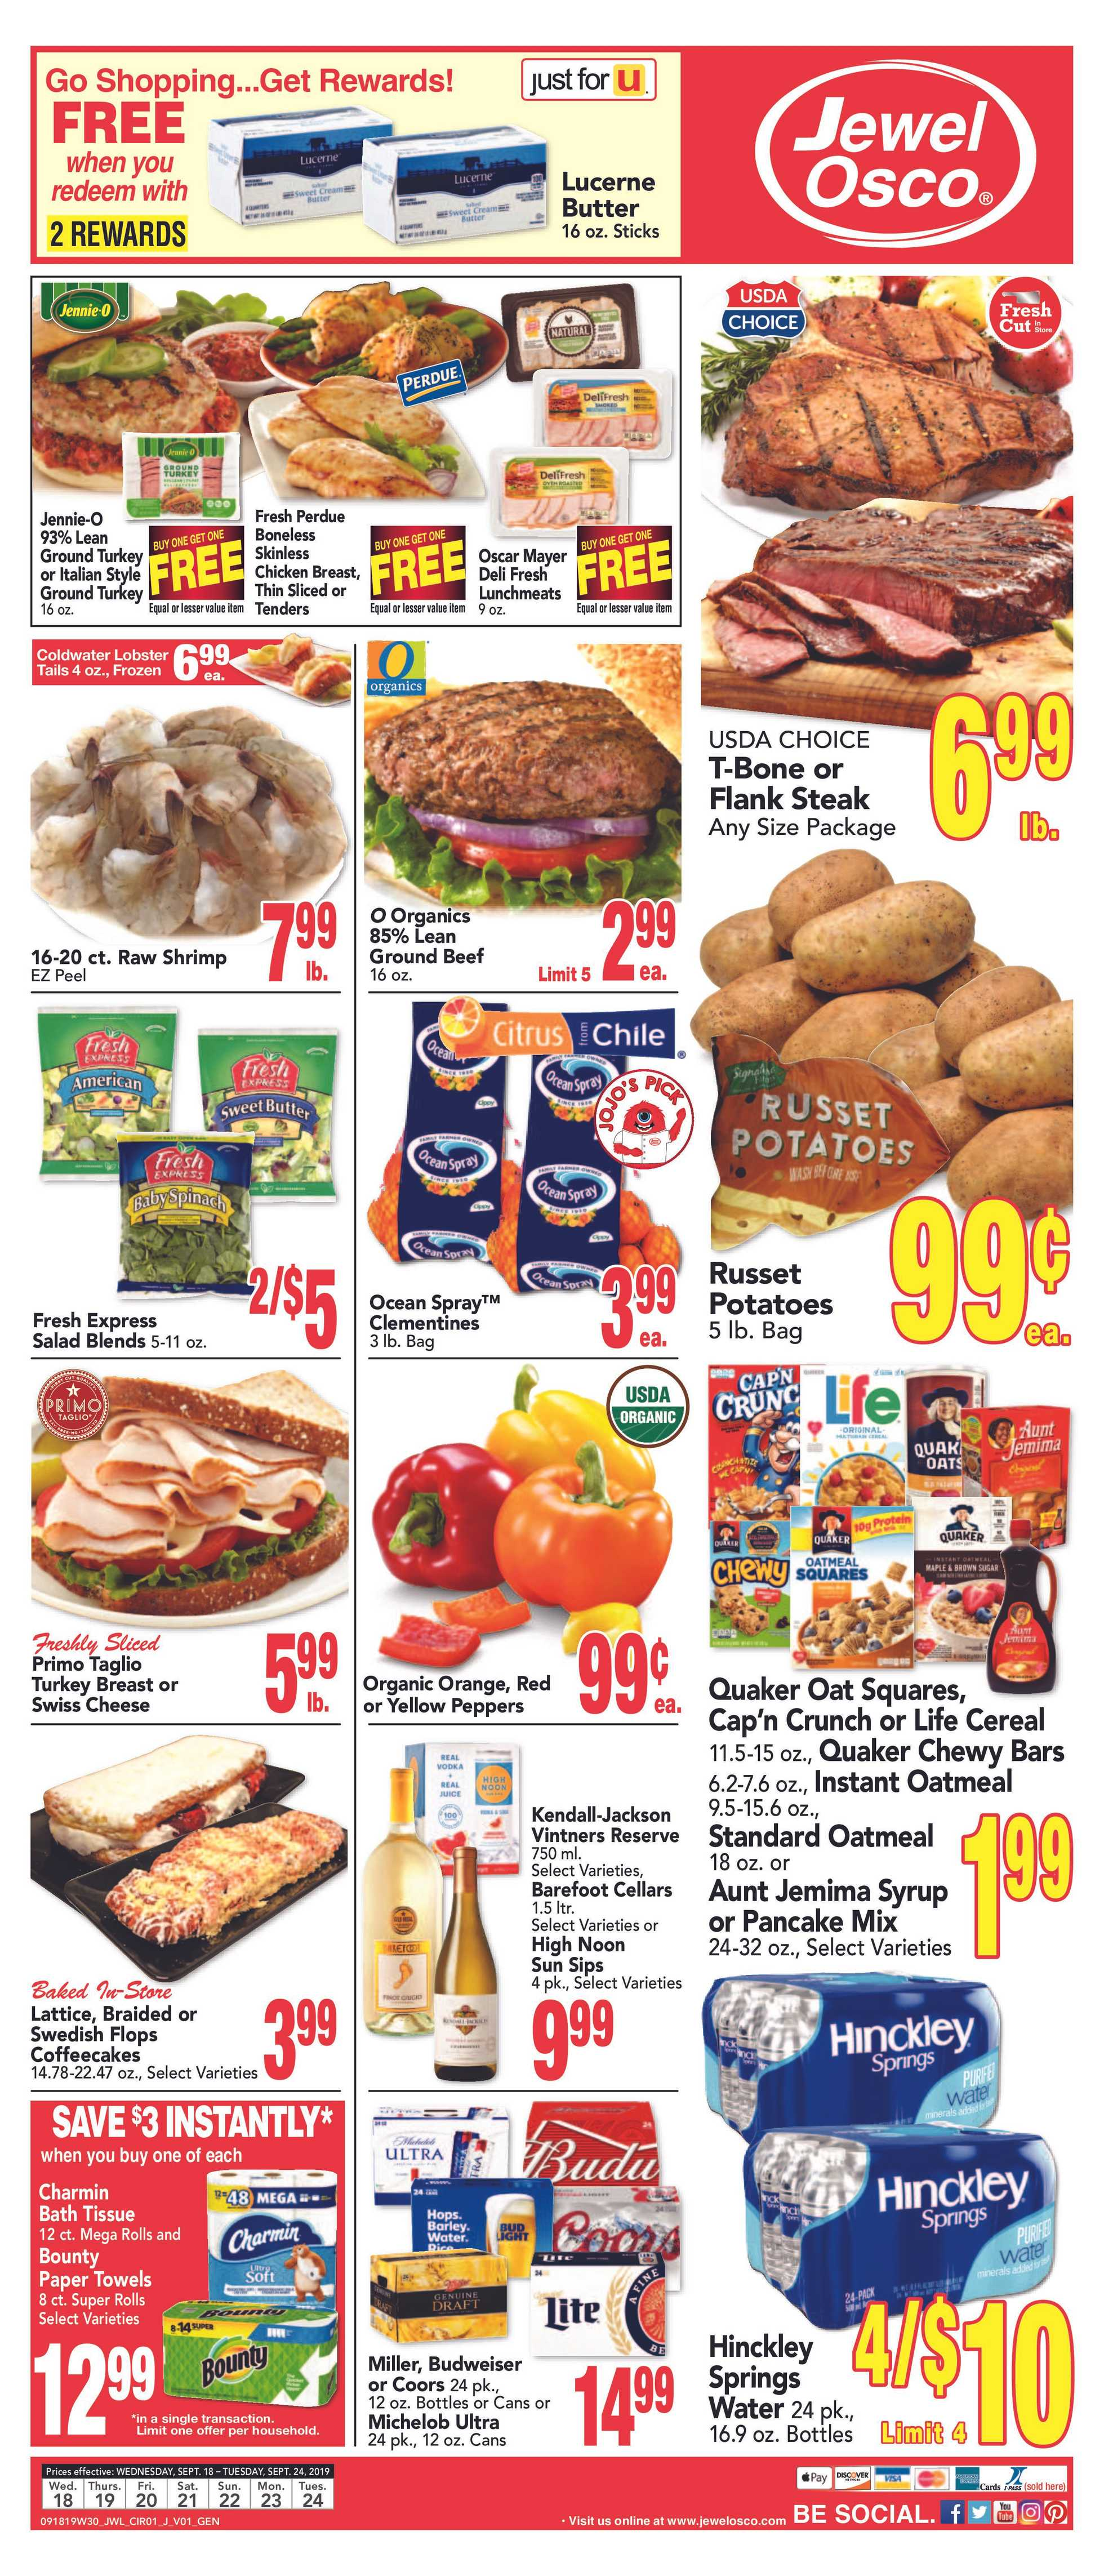 Jewel Osco - deals are valid from 09/18/19 to 09/24/19 - page 1.